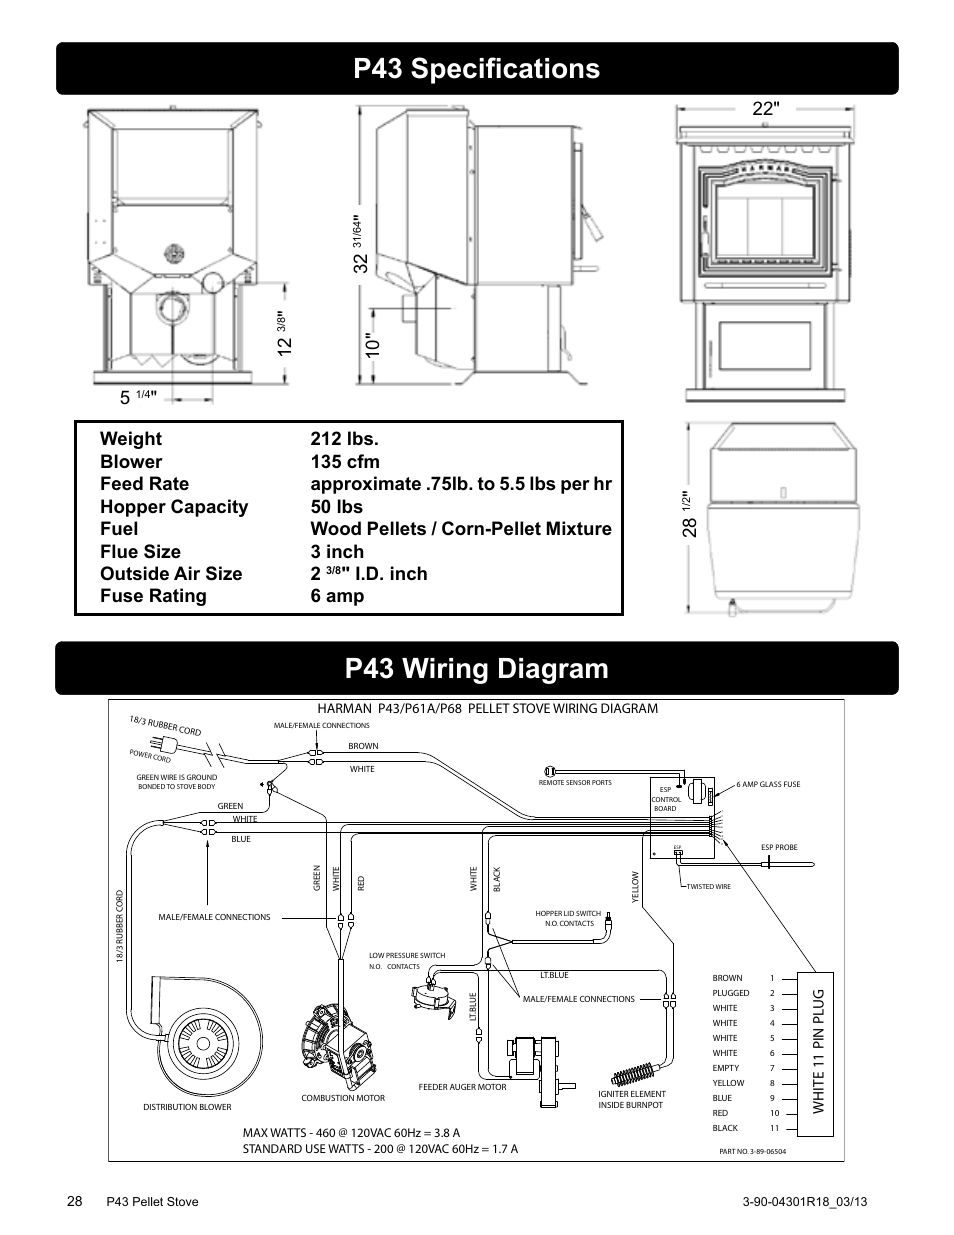 [WRG-0325] Mercedes Benz S430 Fuse Box Diagram